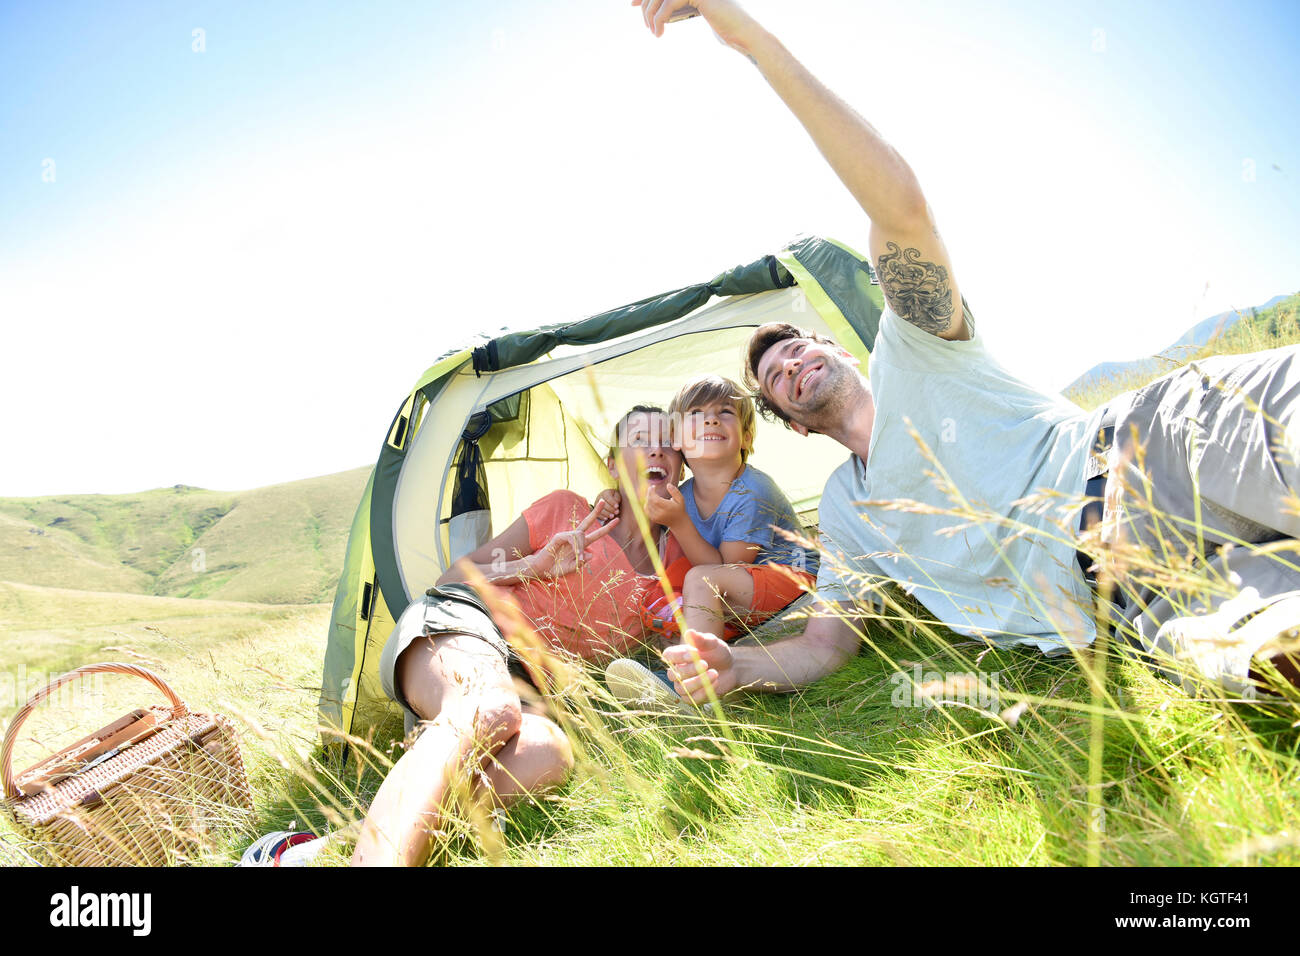 Family taking selfie picture while camping - Stock Image